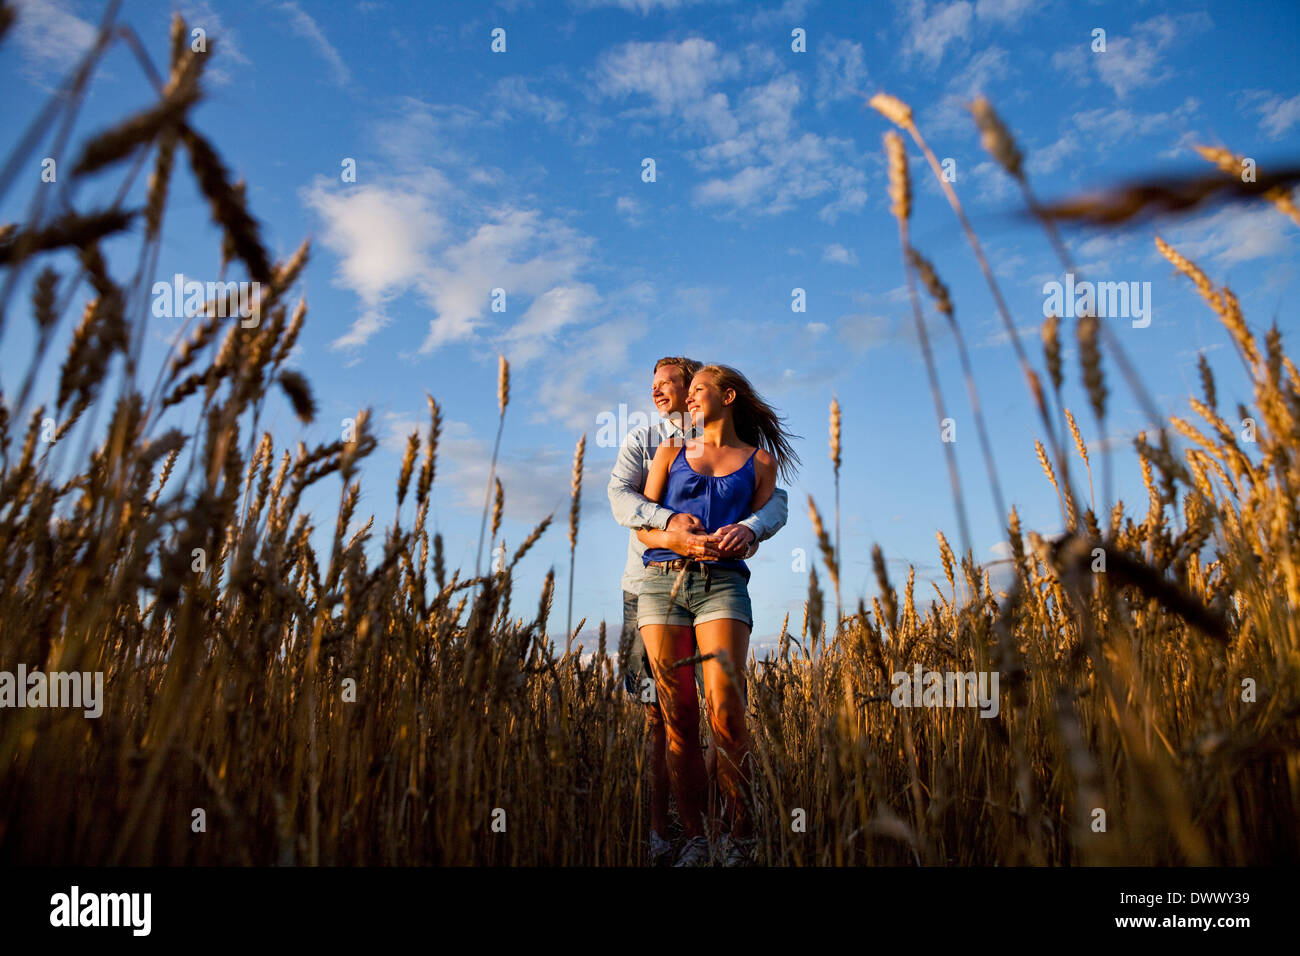 Affectionate young couple embracing while standing on wheat field Stock Photo